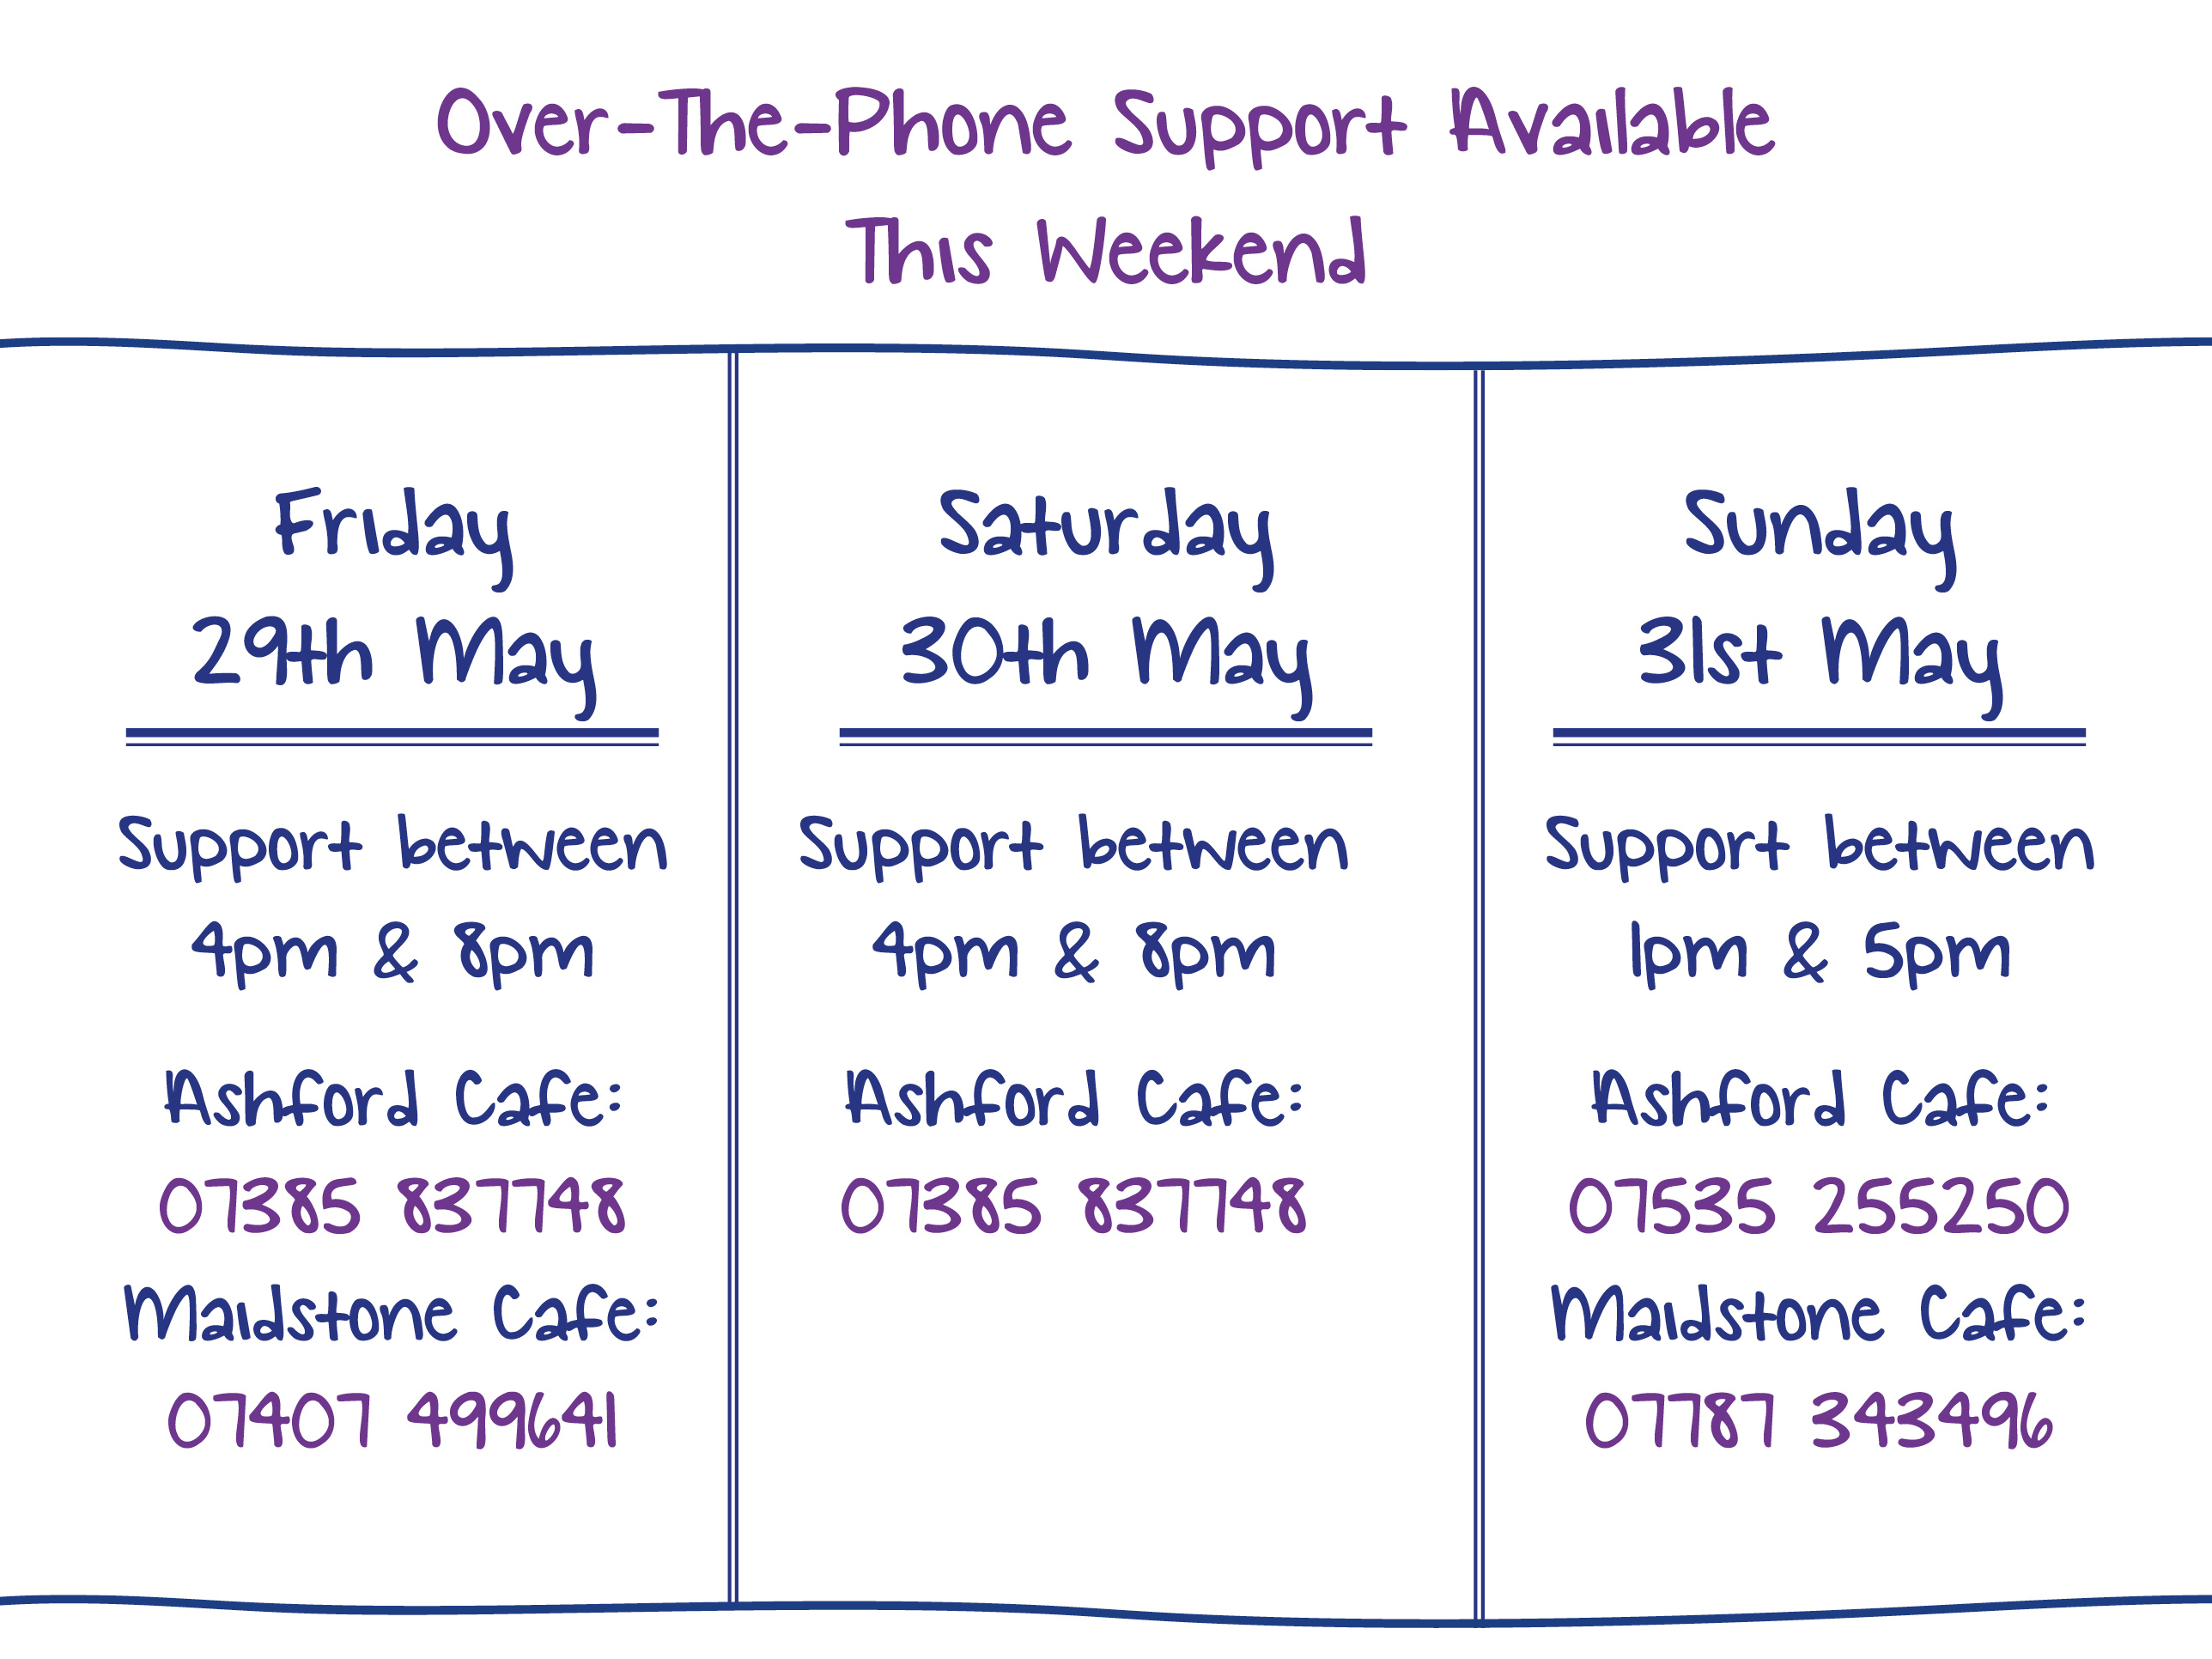 Over-The-Phone Support Available This Weekend. Friday 29th May. Support between 4pm & 8pm Ashford Cafe: 07385 837748 Maidstone Cafe: 07407 499641. Saturday 30th May. Support between 4pm & 8pm Ashford Cafe: 07385 837748. Sunday 31st May. Support between 1pm & 5pm Ashford Cafe: 07535 255250 Maidstone Cafe: 07787 343496.